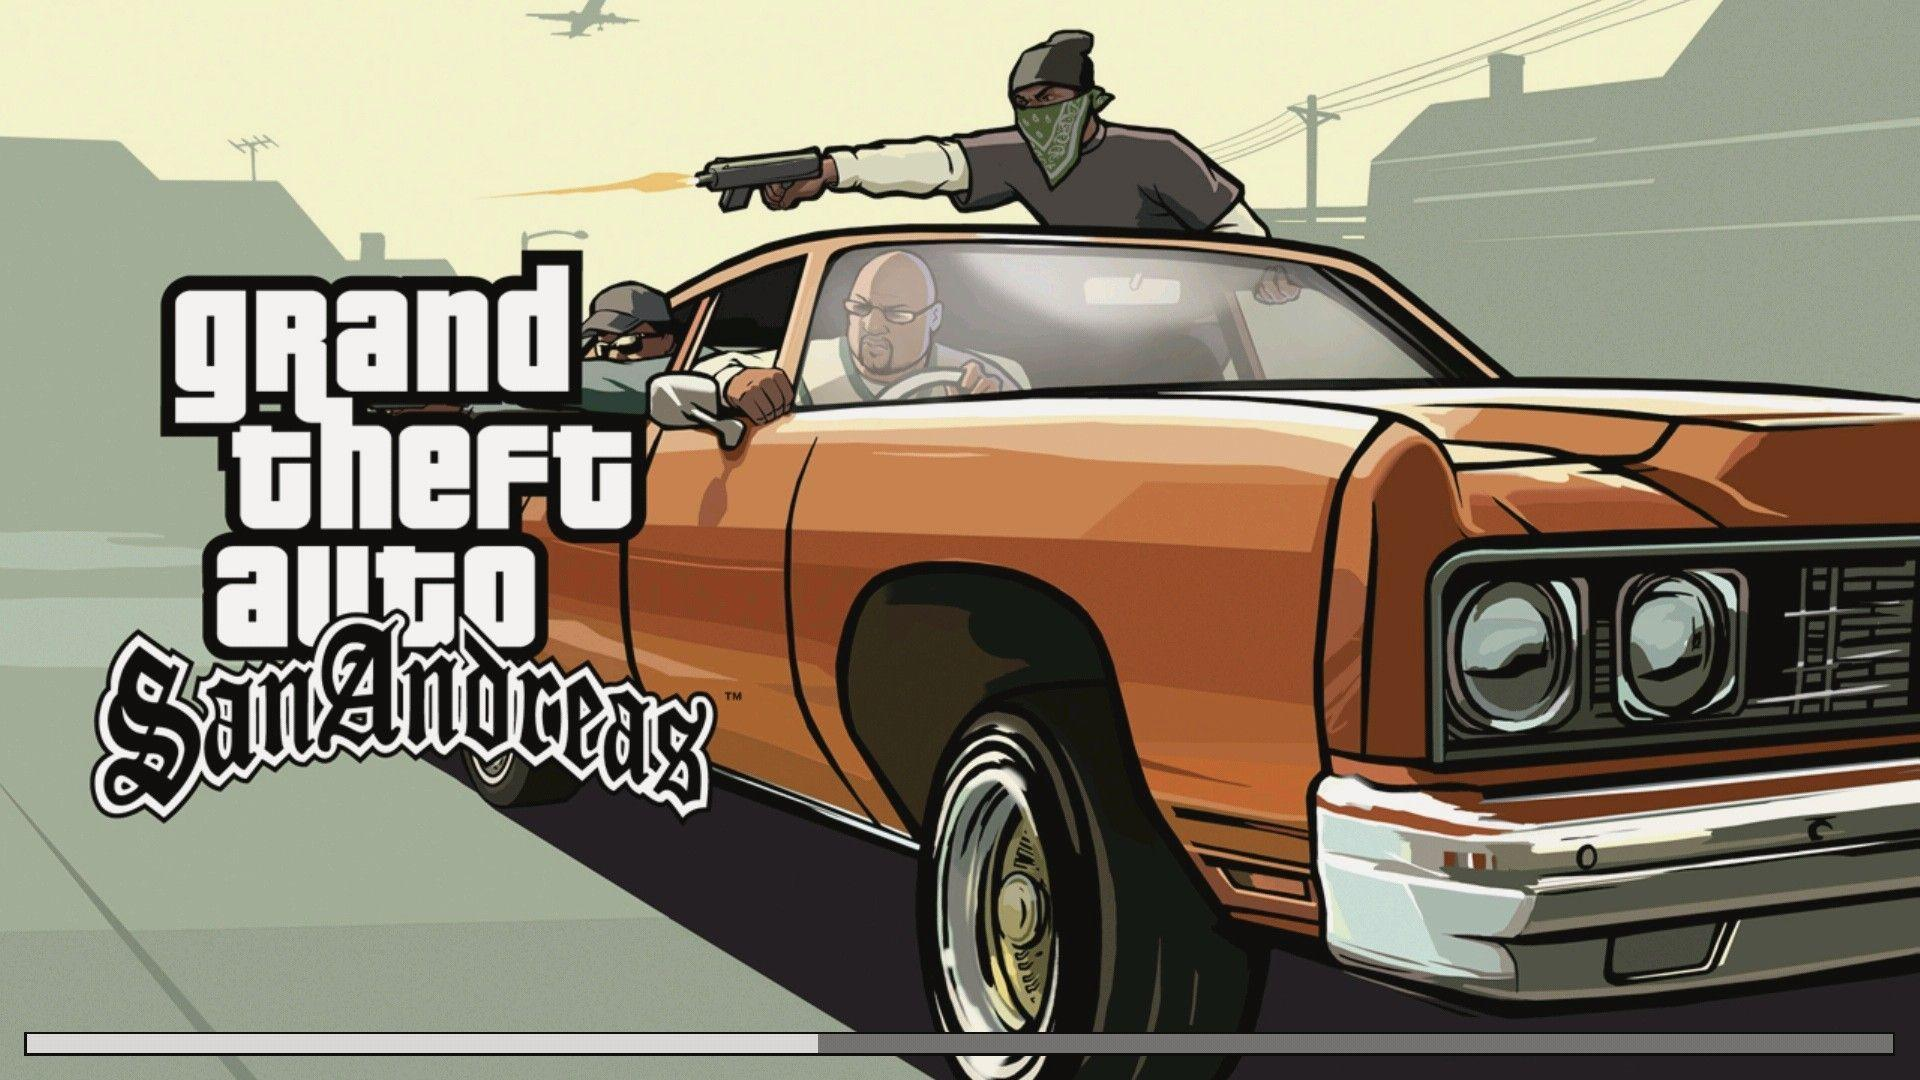 Grand Theft Auto San Andreas Wallpapers HD Download